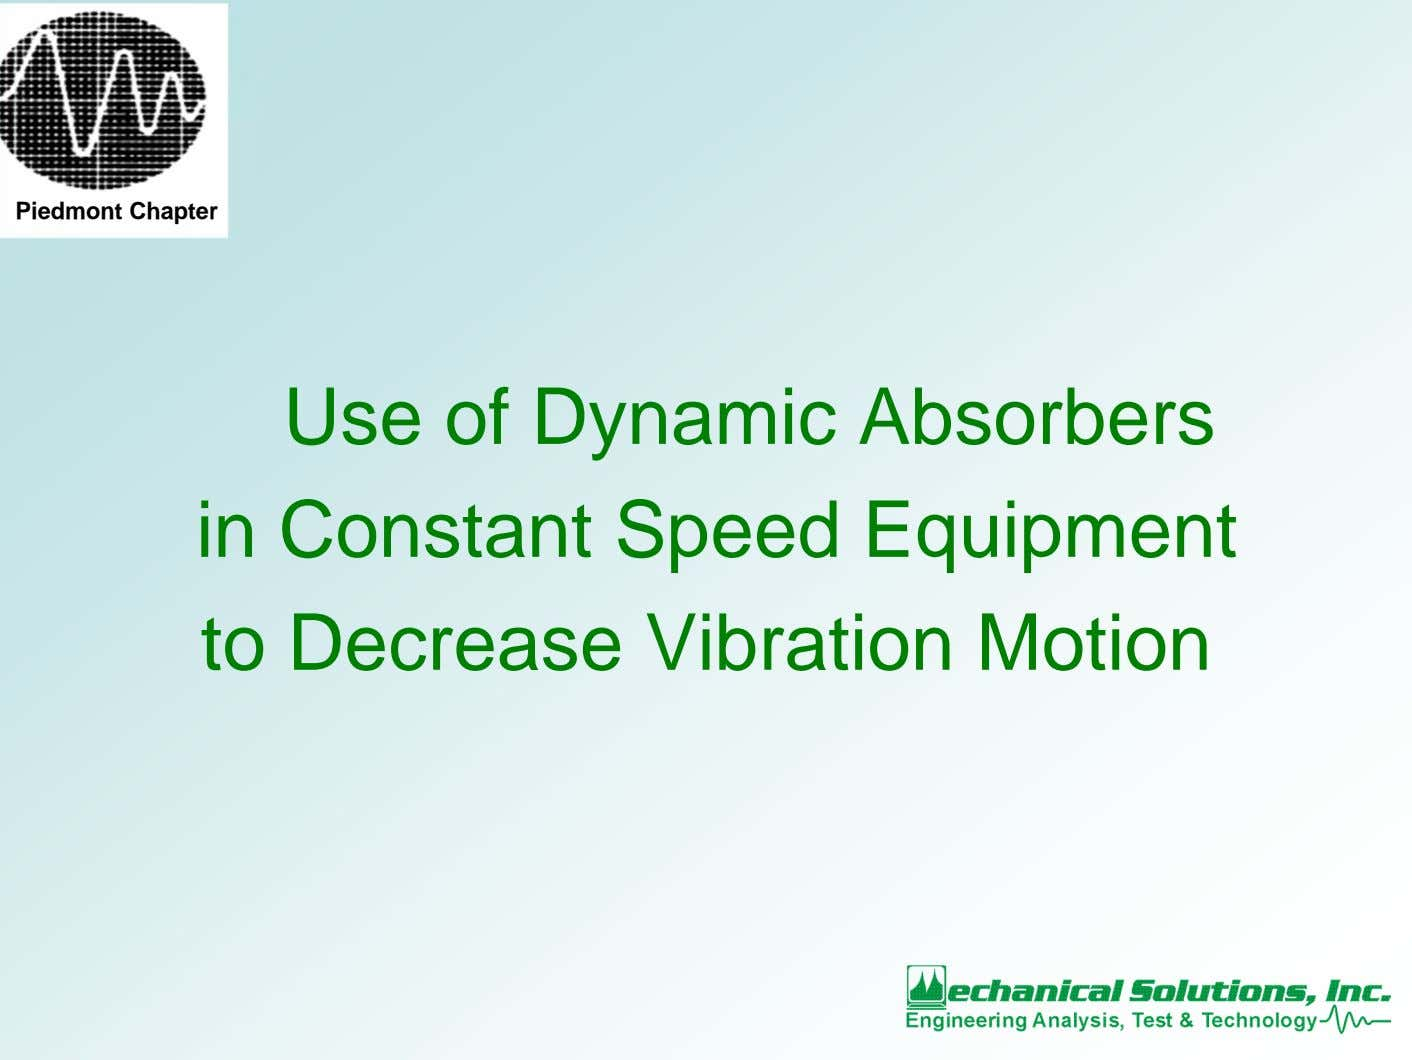 Piedmont Chapter Use of Dynamic Absorbers in Constant Speed Equipment to Decrease Vibration Motion